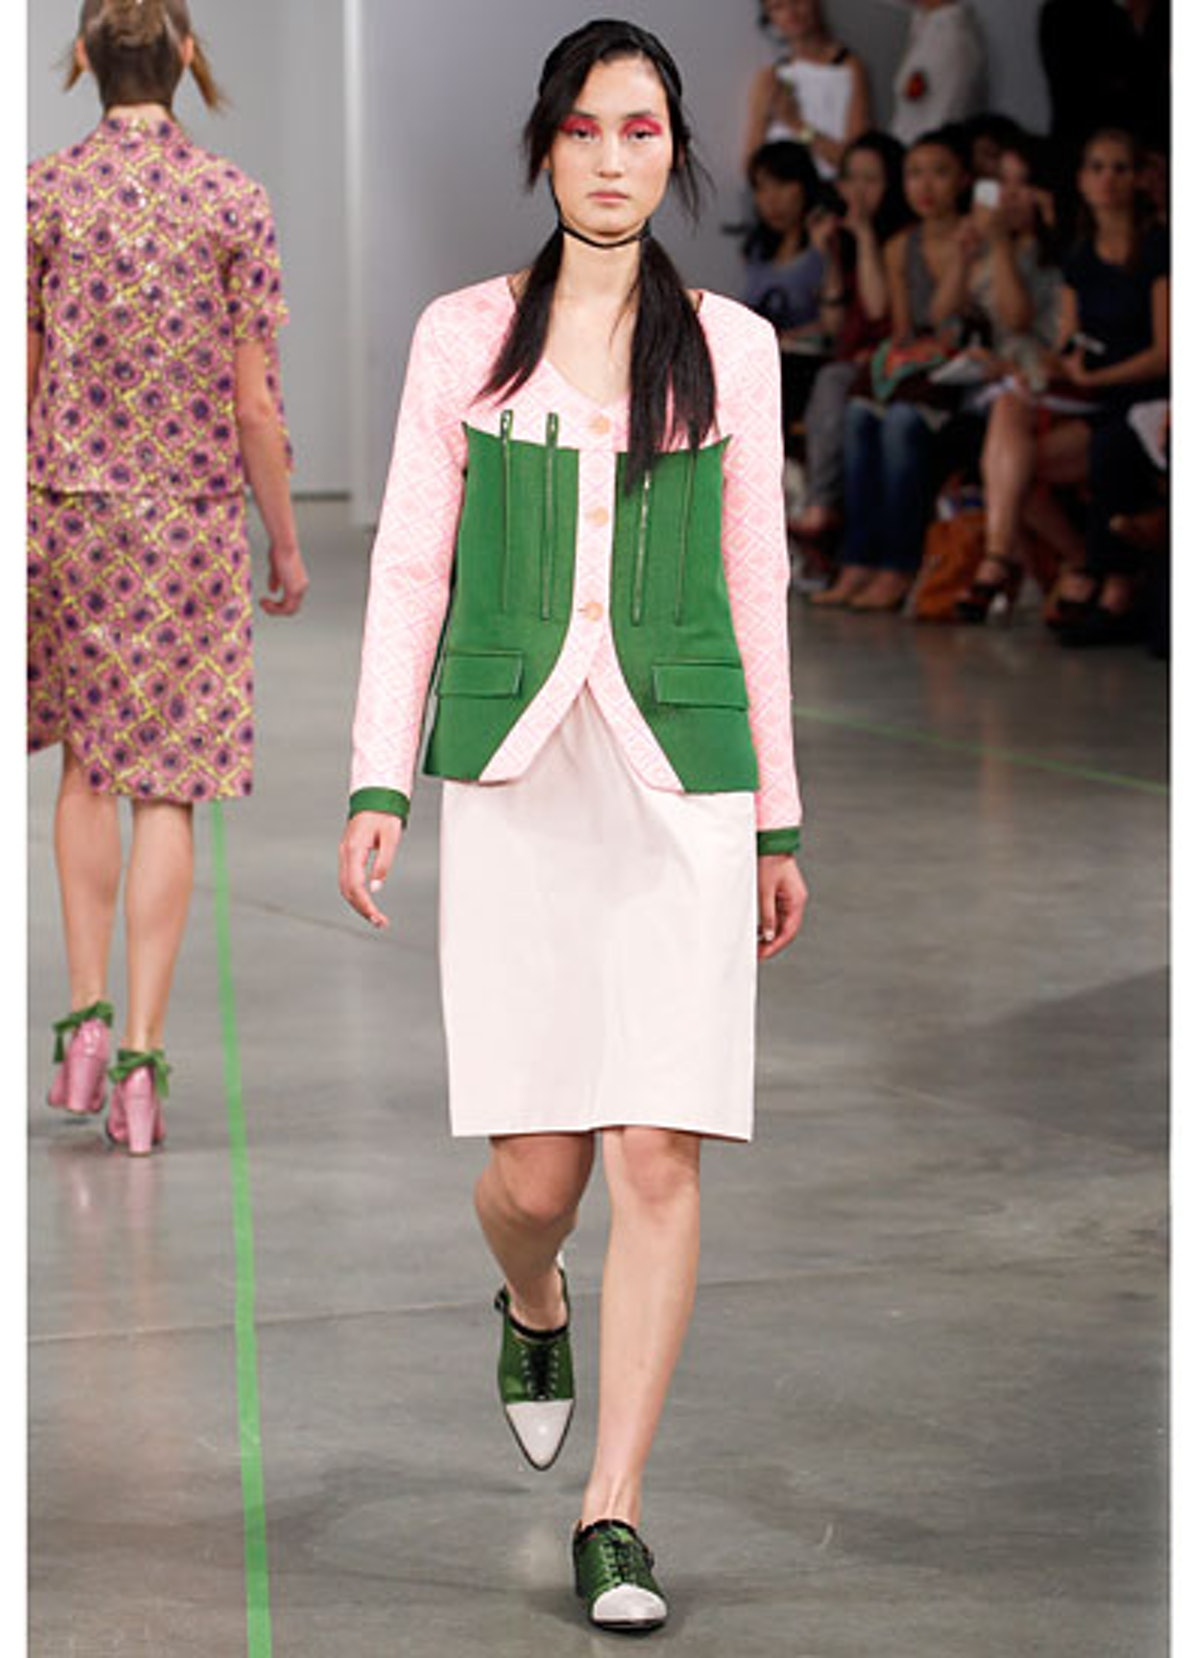 fass-creatures-of-the-wind-spring-2013-runway-15-v.jpg